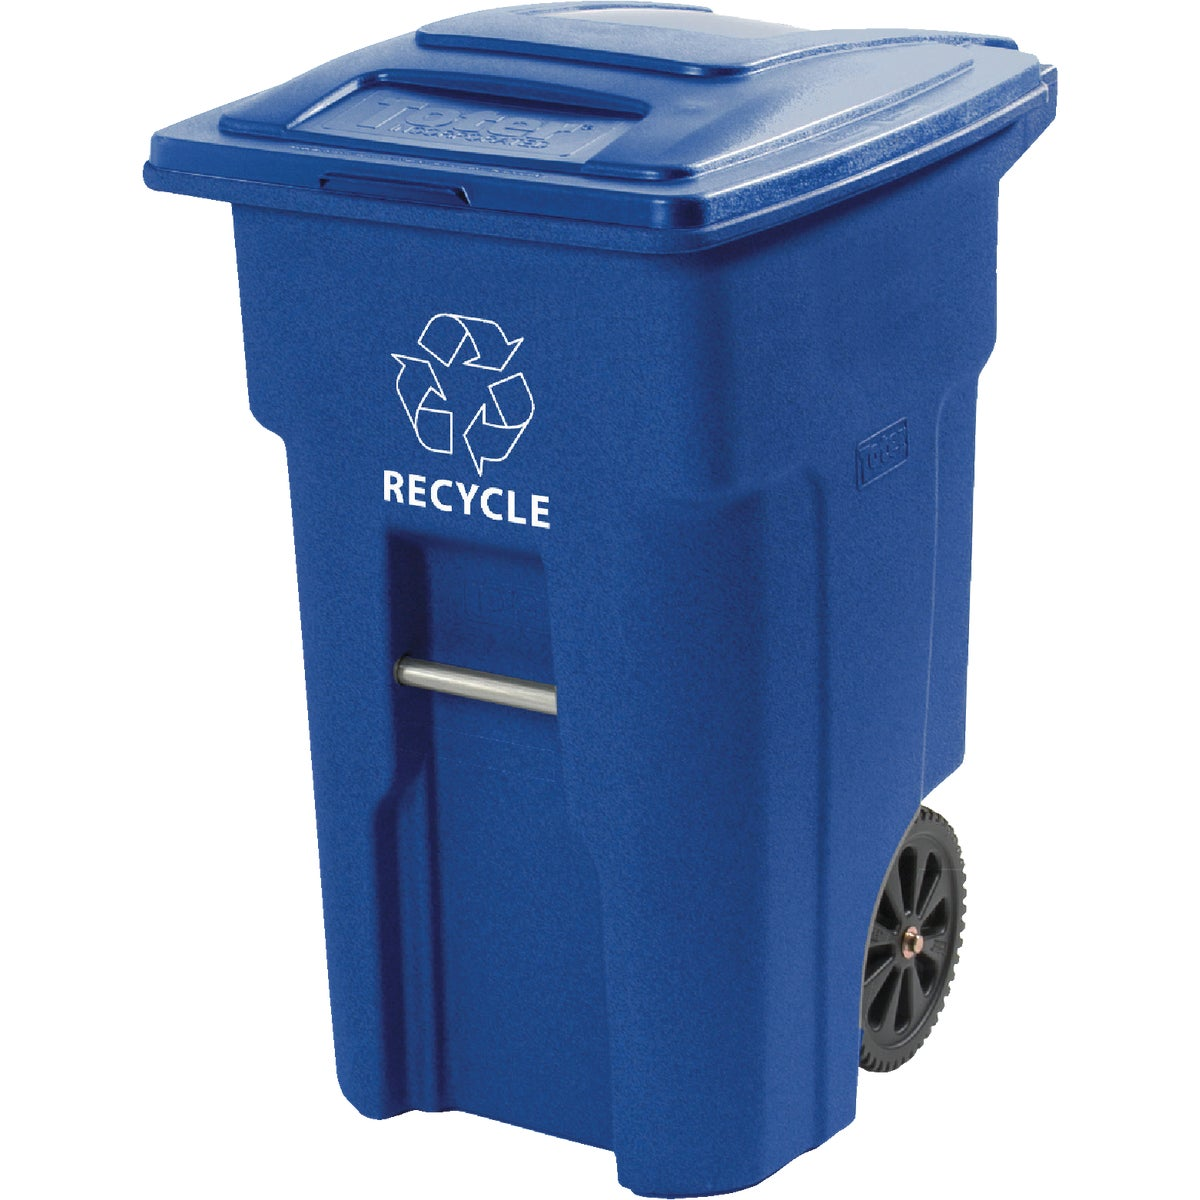 48GAL 2WHL RECYCLE CART - 025548-D6BLU by Toter